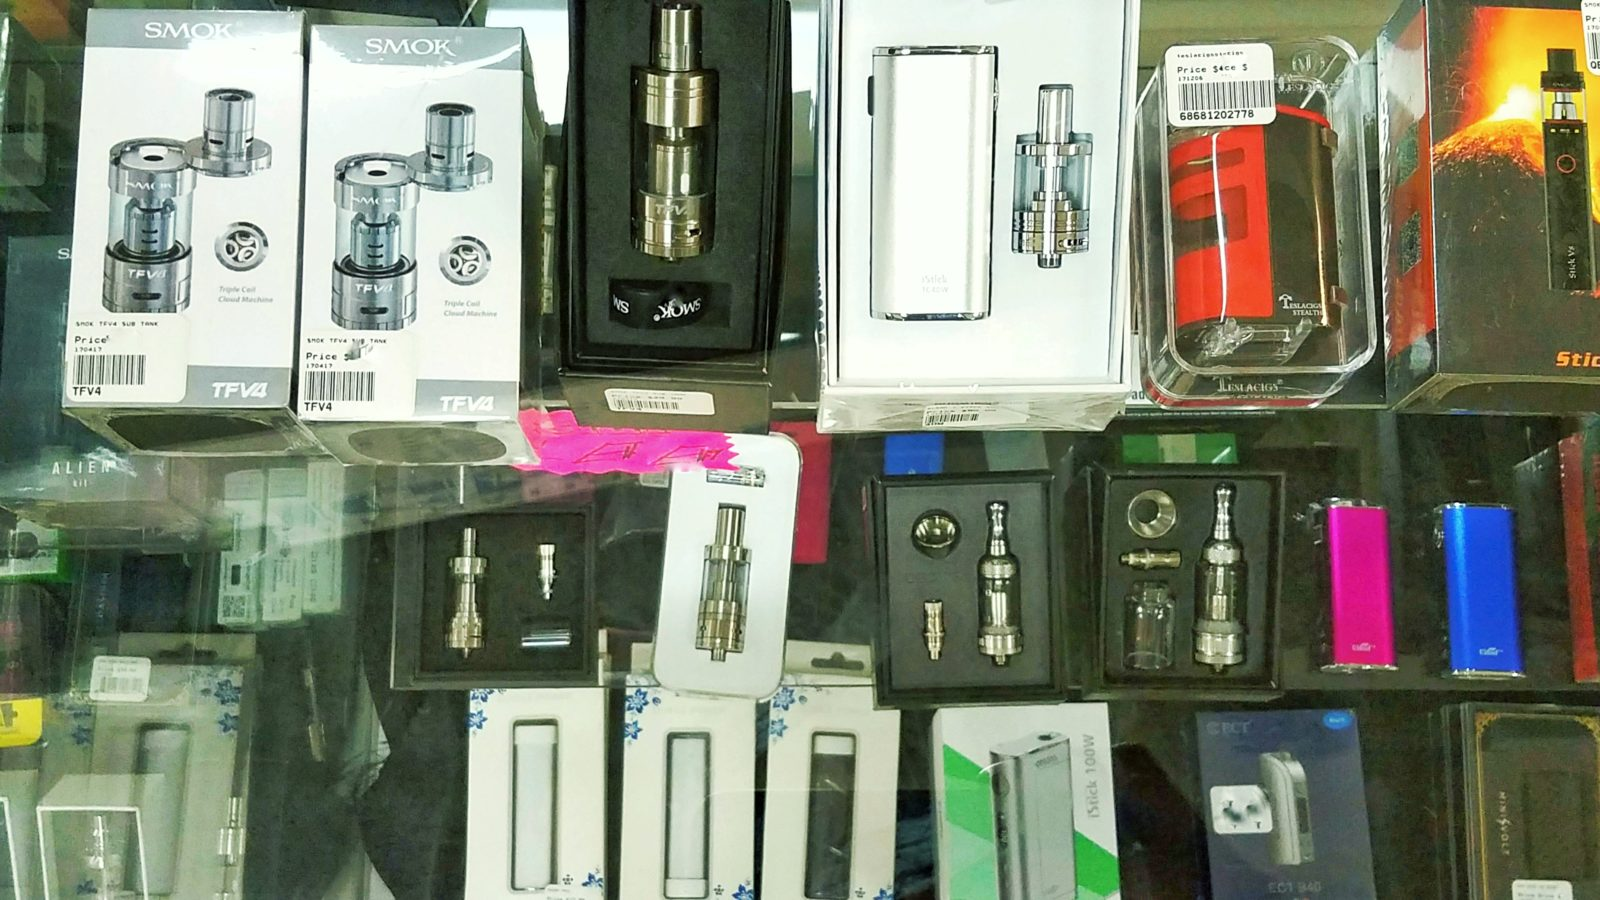 Nautilus, Aspire, SMOK Vaporizers in Store and More....